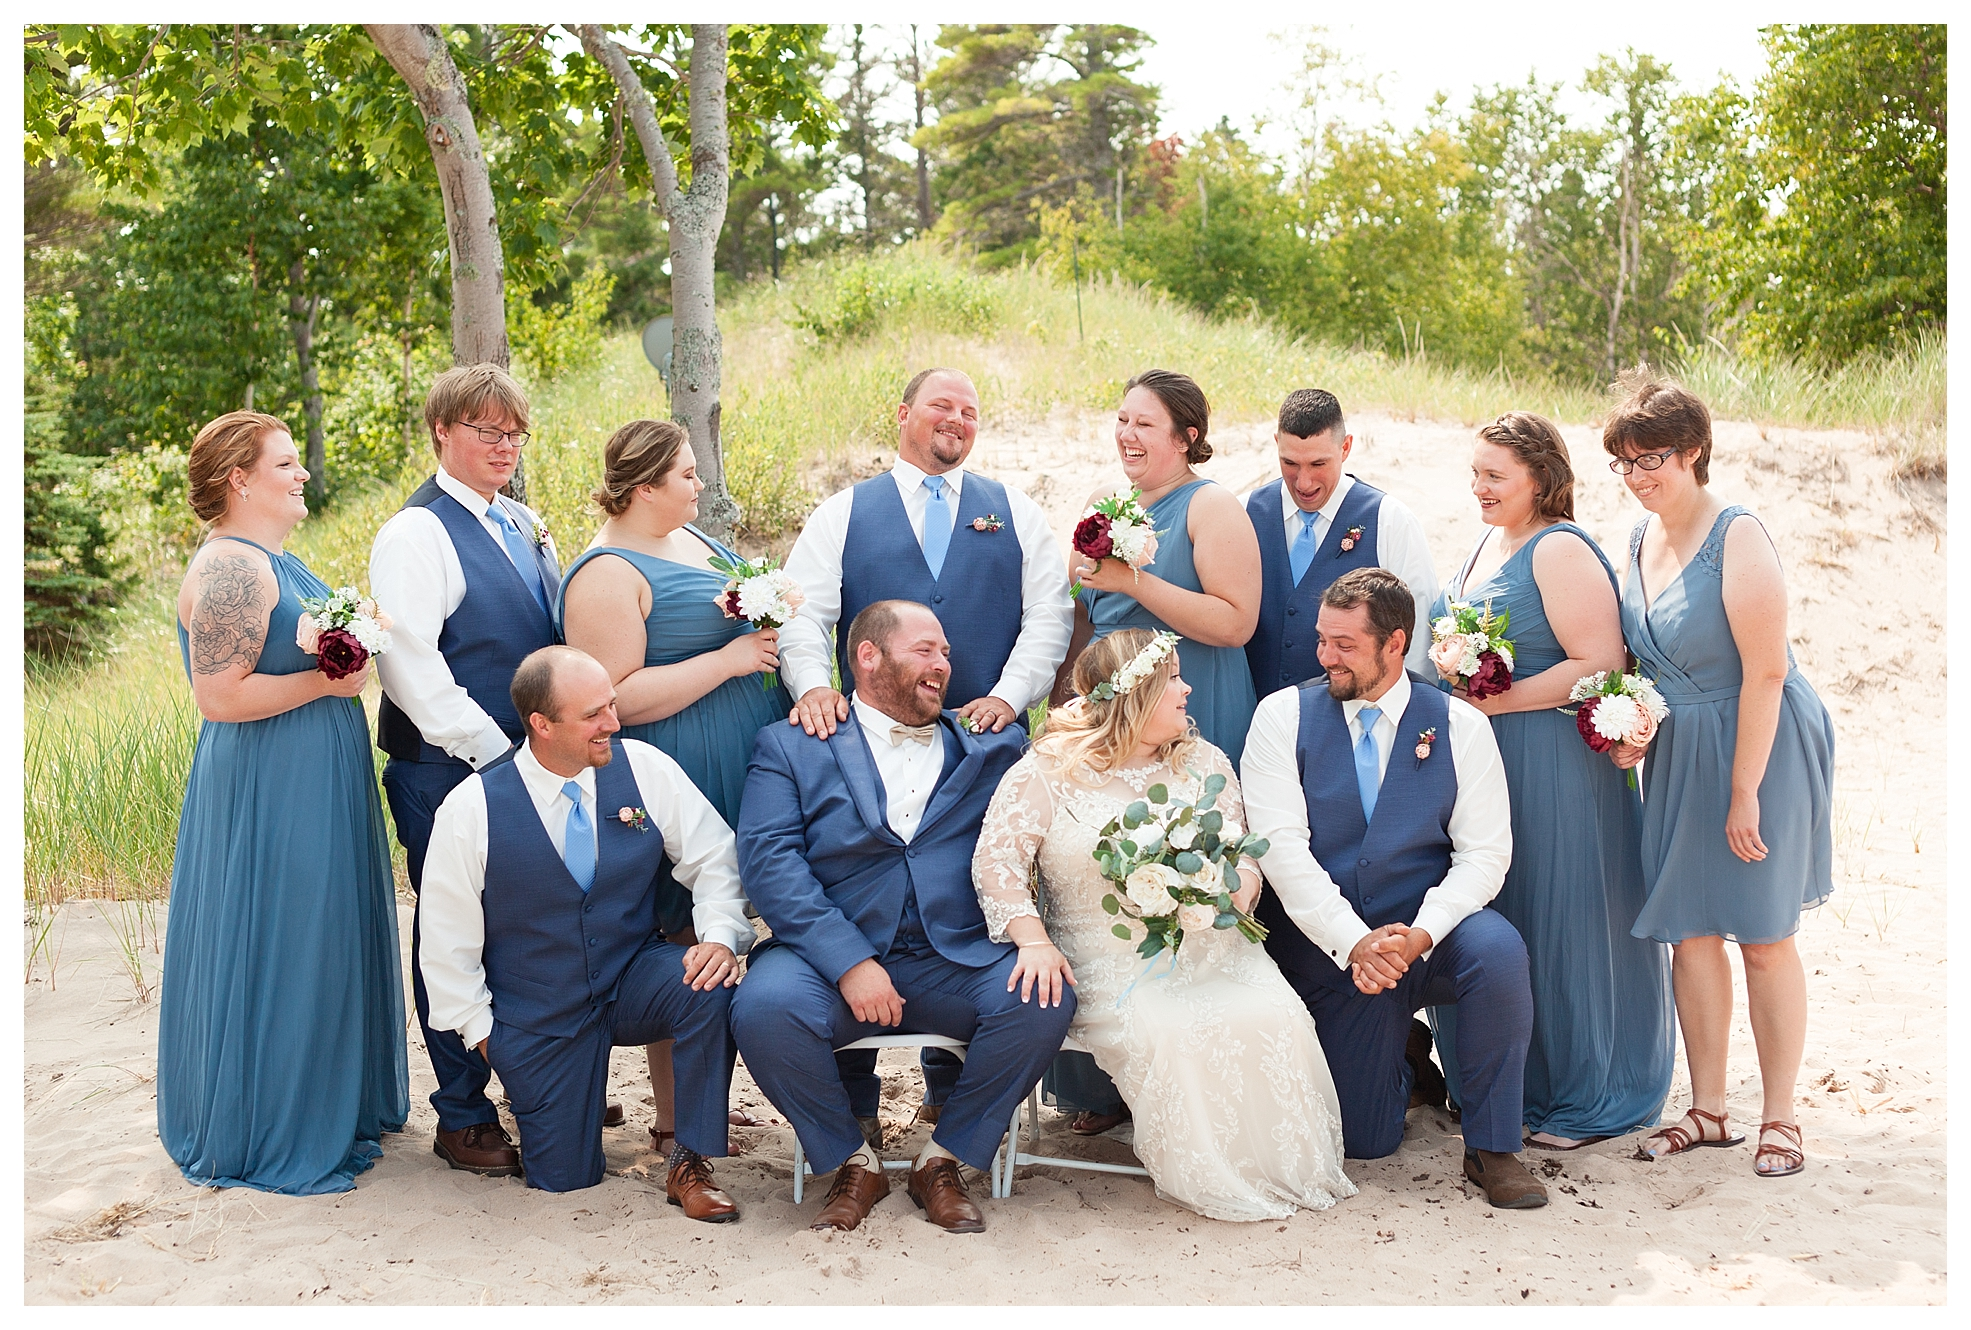 This bridal party kept me laughing all day!